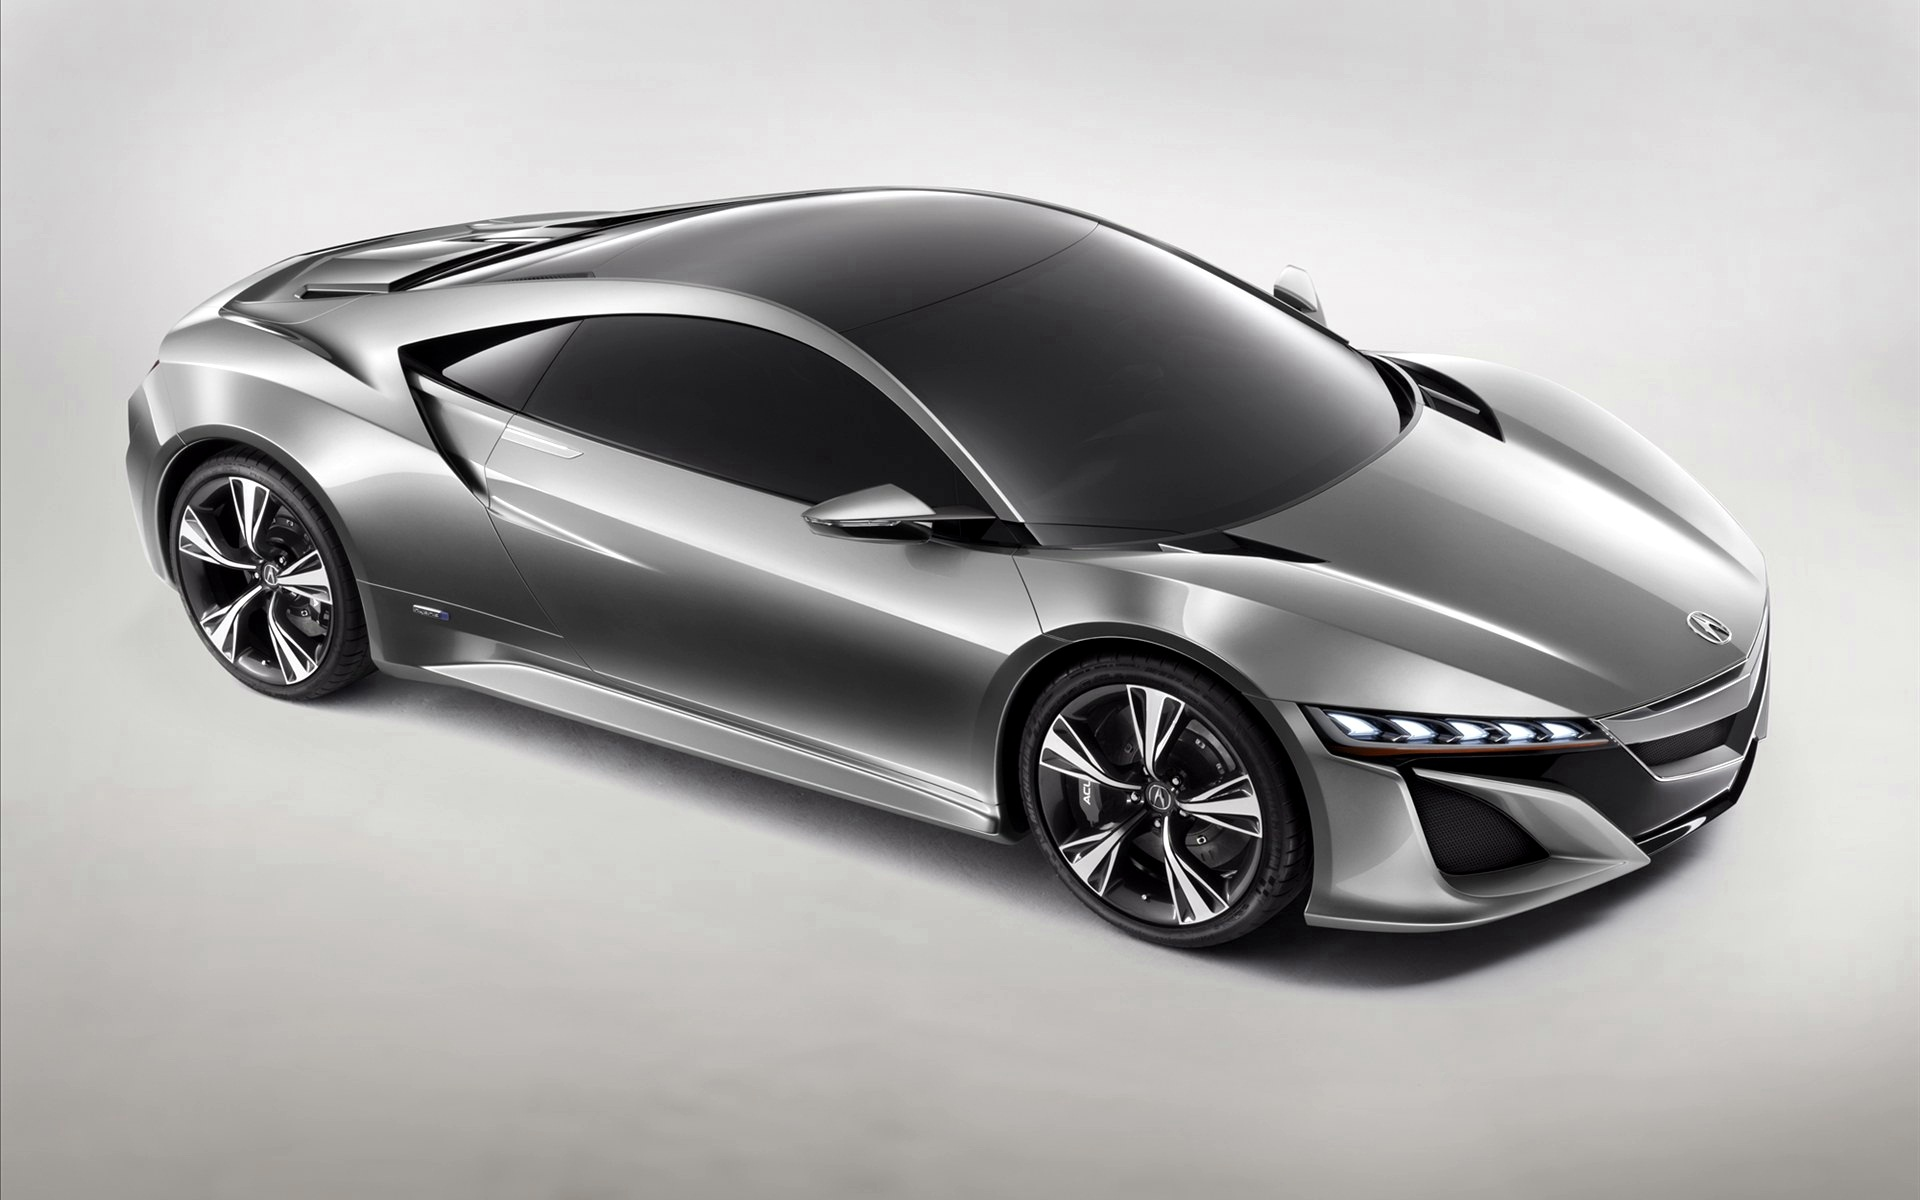 2013 Acura NSX Concept Desktop Computers Free Wallpaper